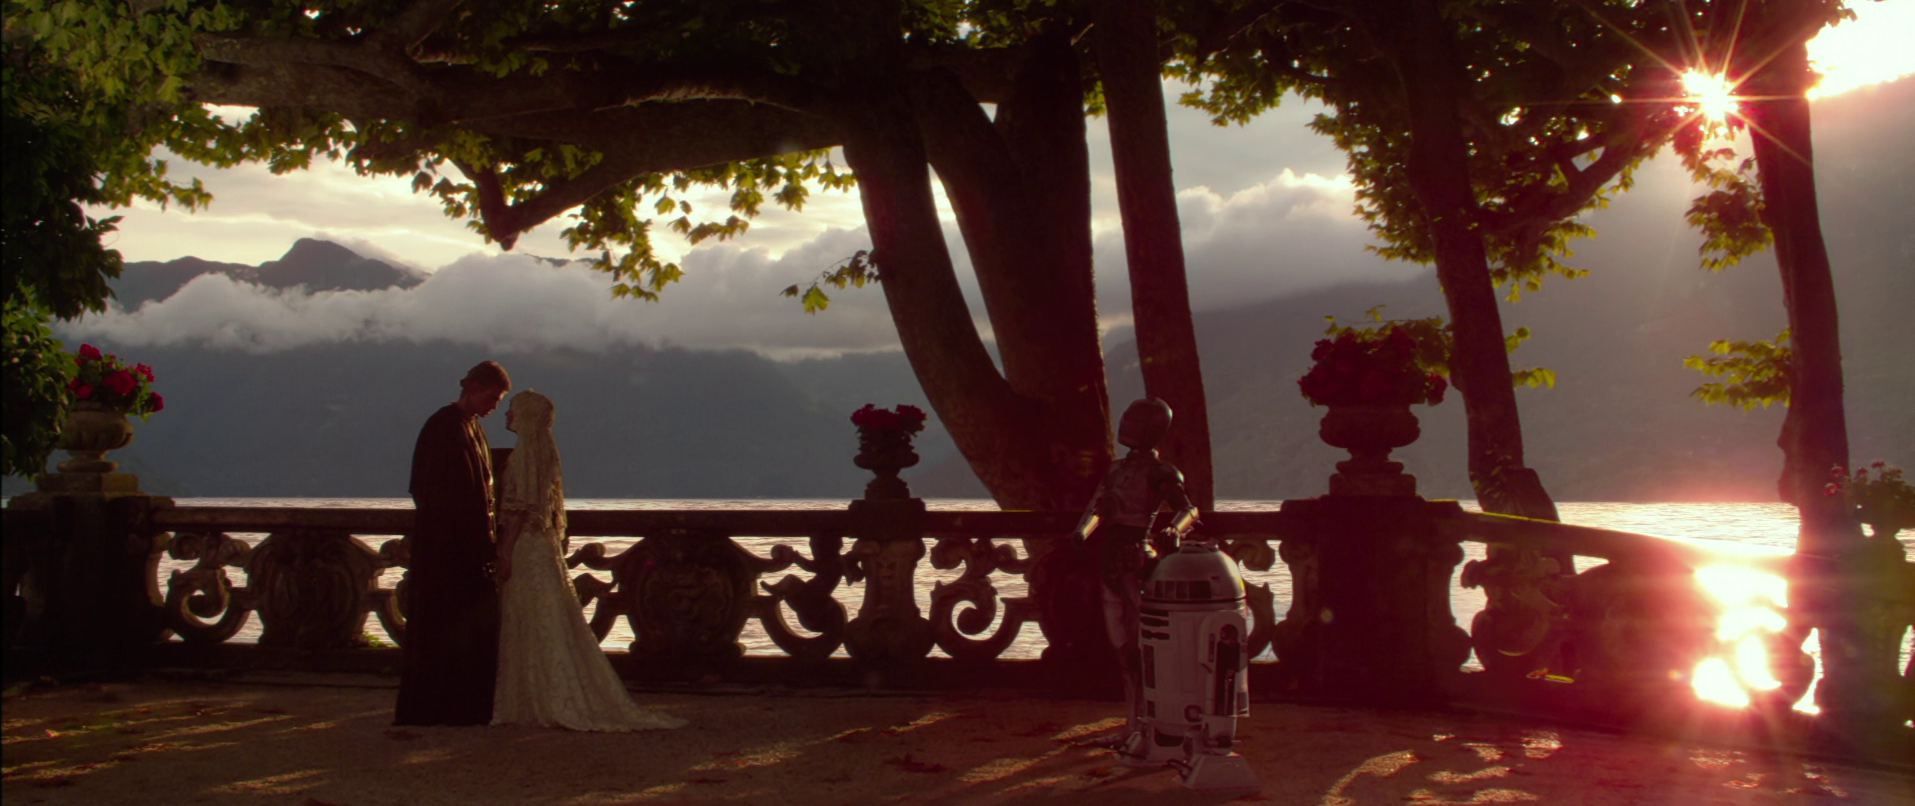 Anidala wedding; Anakin and Padme get married by the lake on Naboo